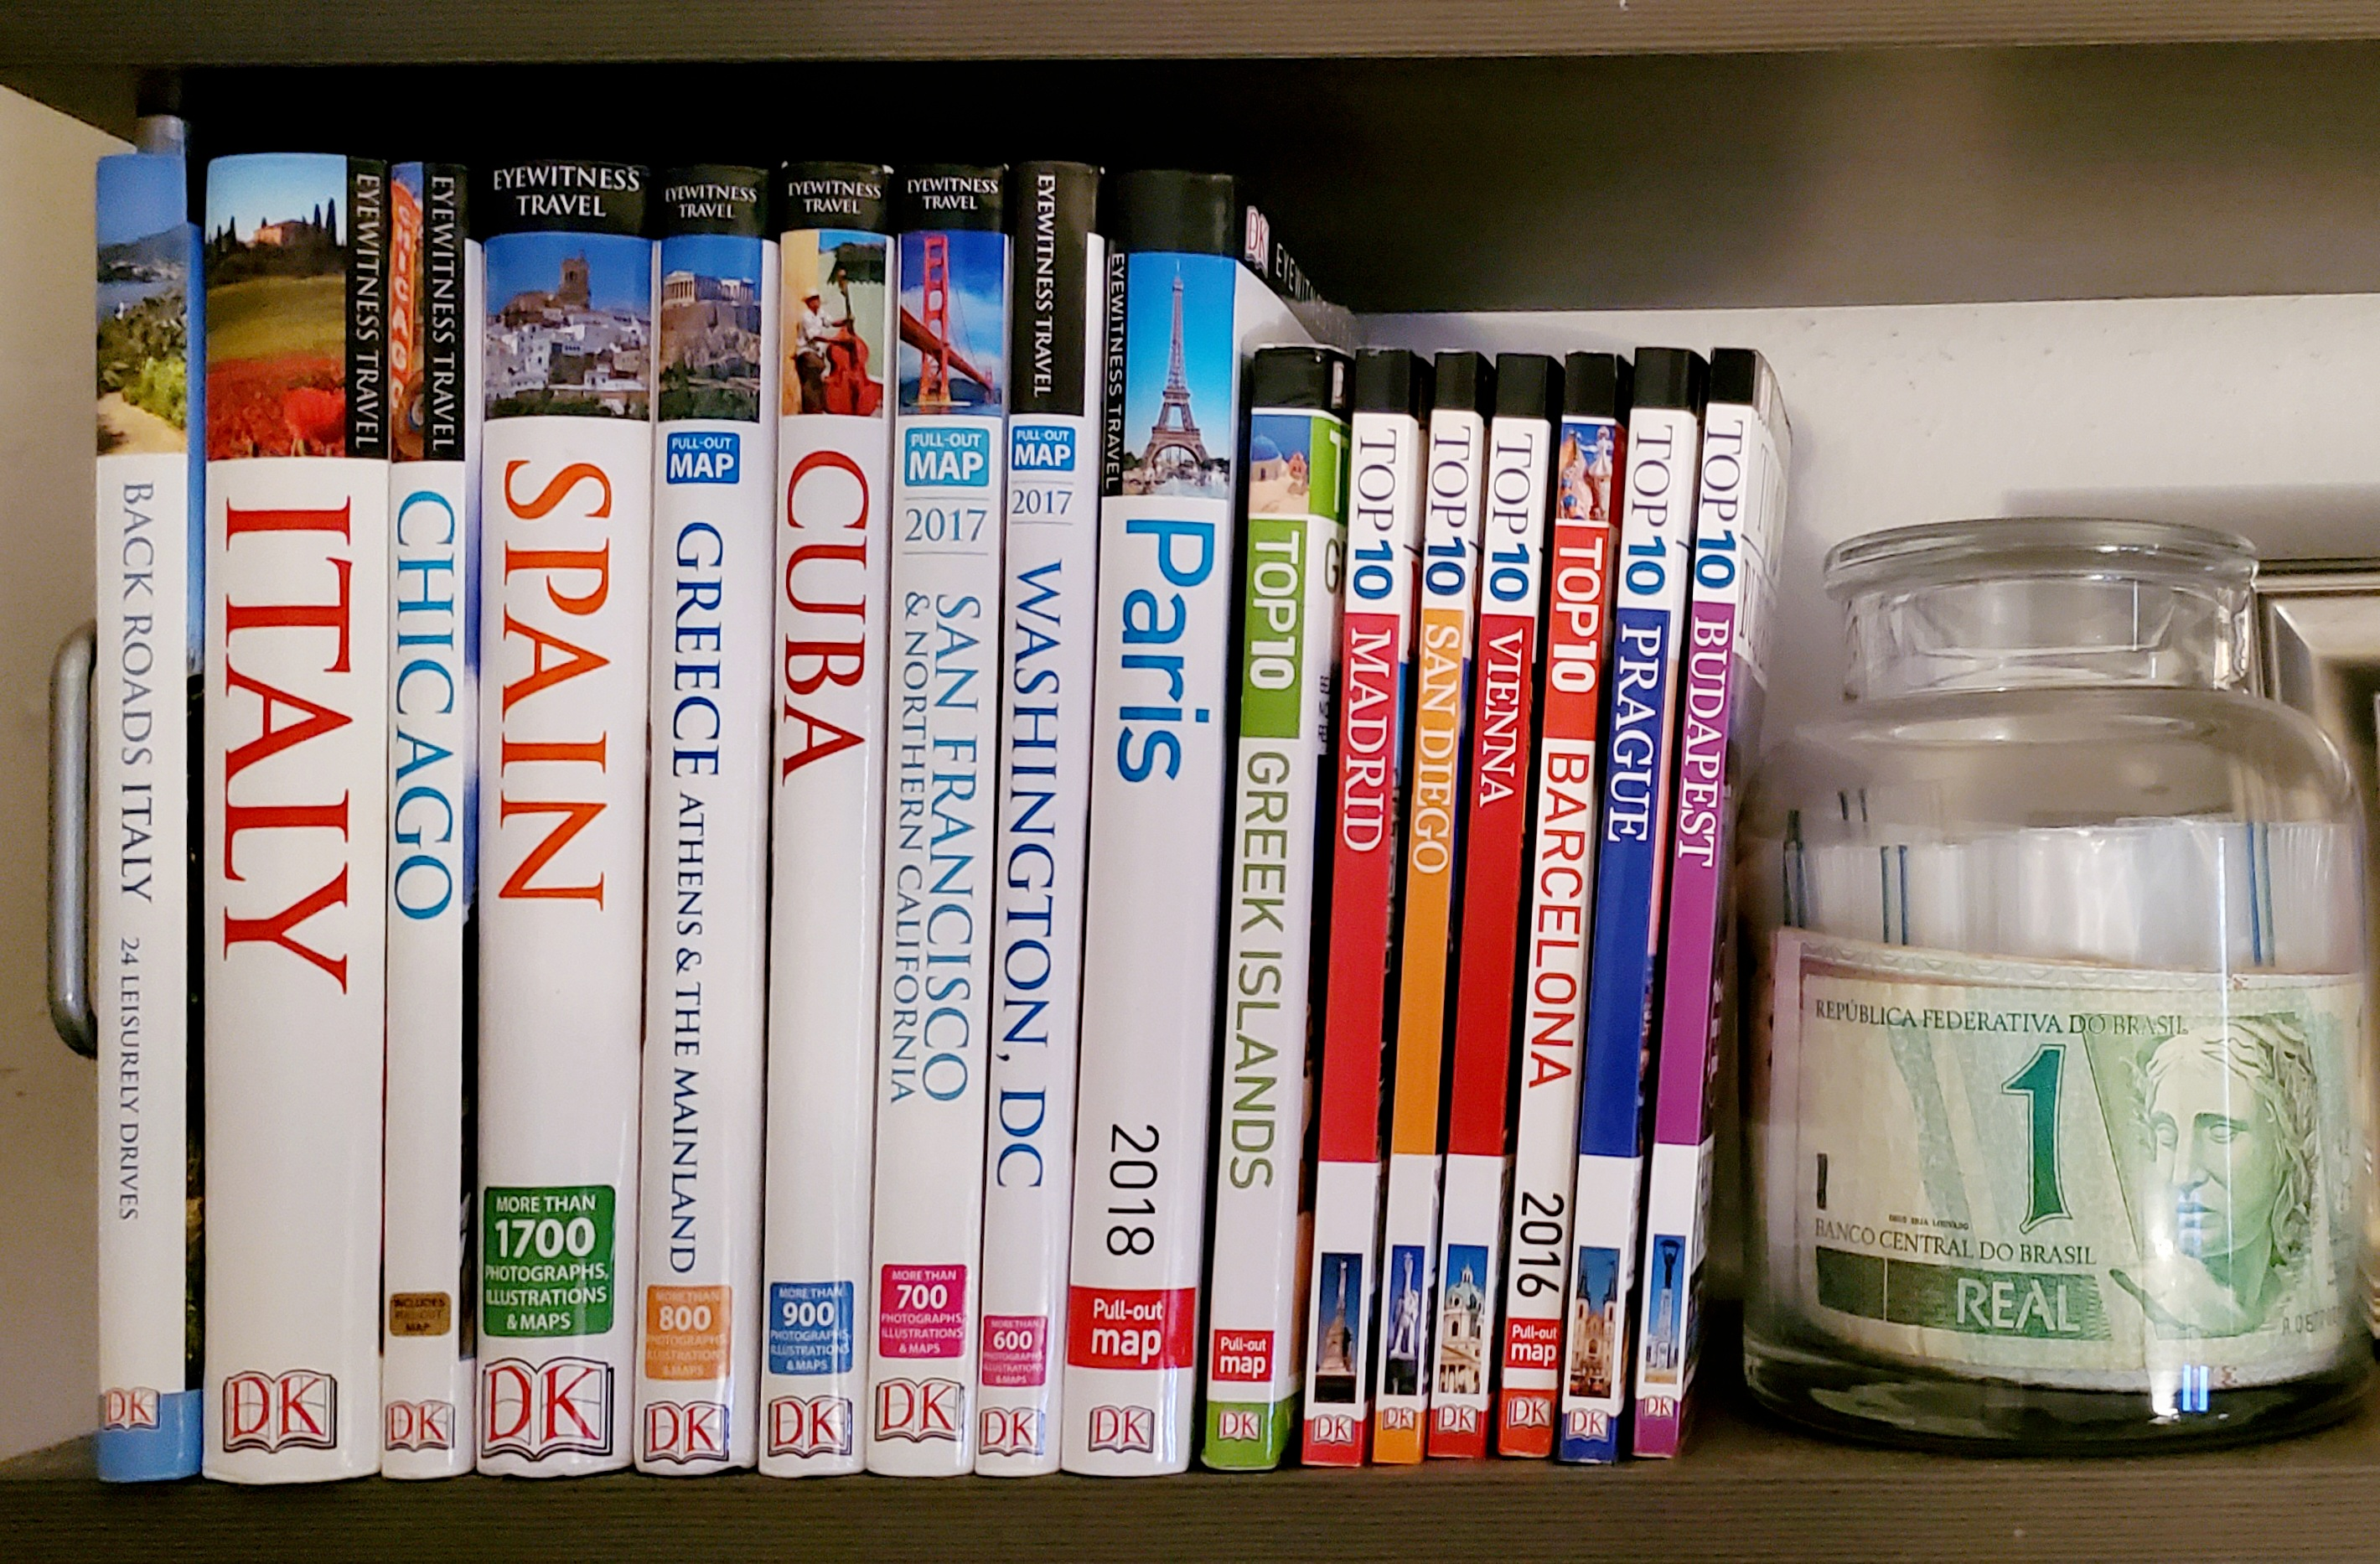 DK Eyewitness Travel guidebooks